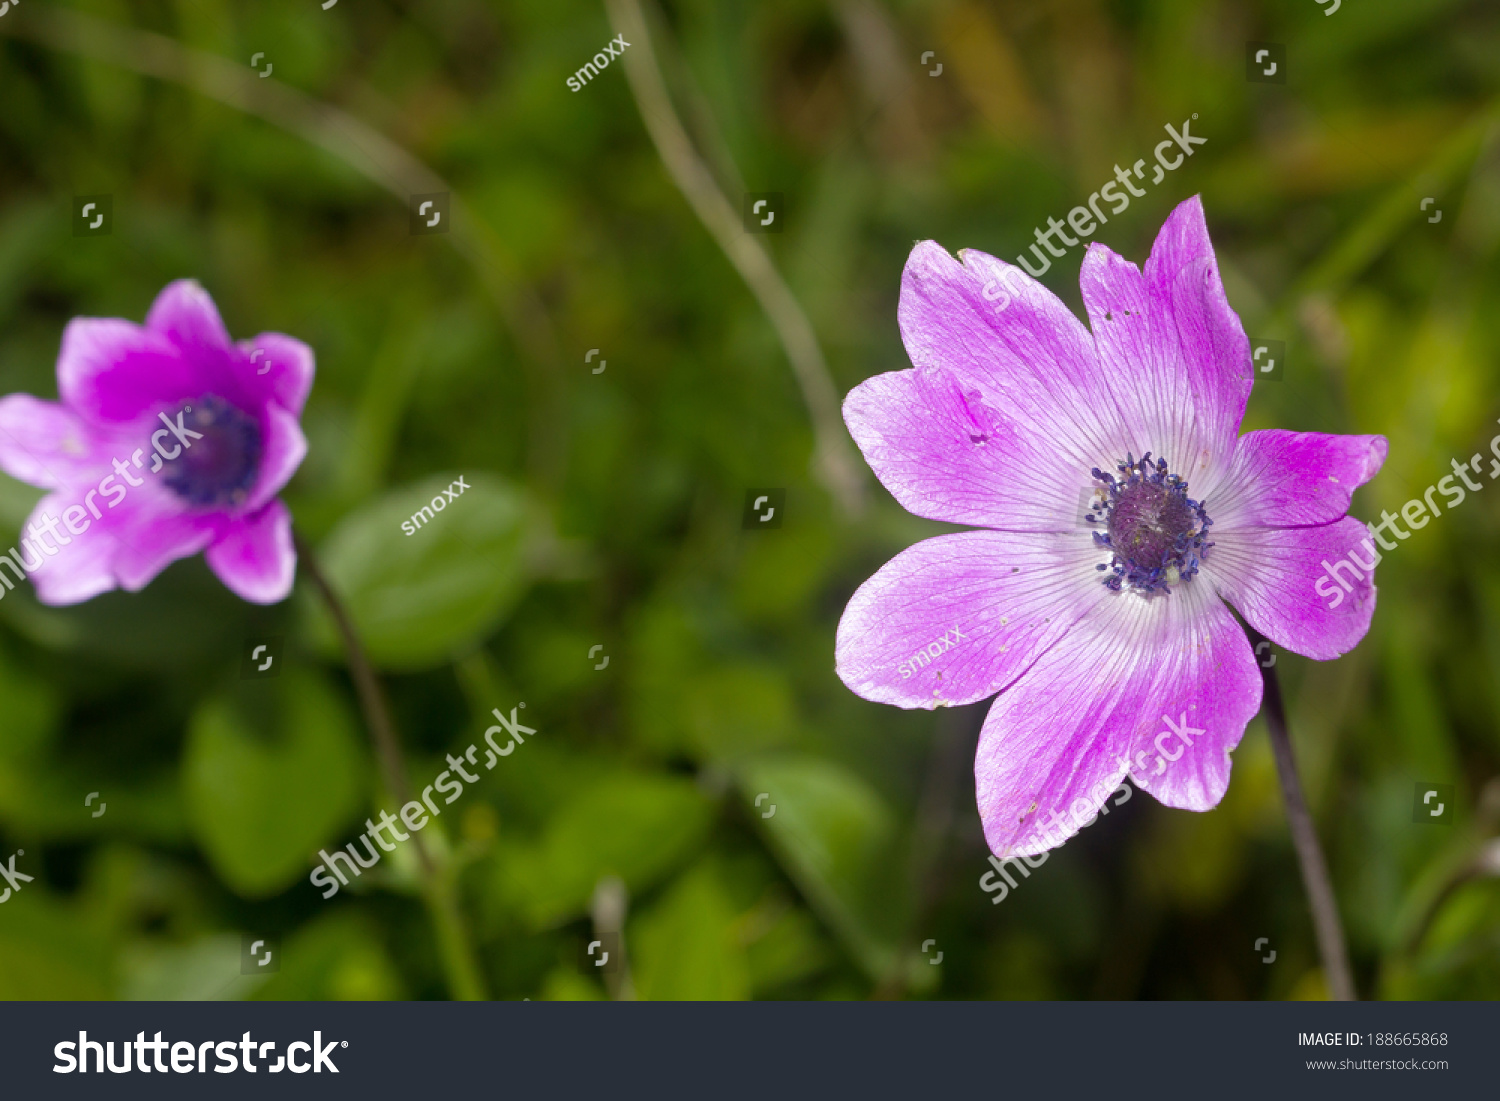 Closeup Of A Rare Beautiful Flower In The Nature Of Greek Island